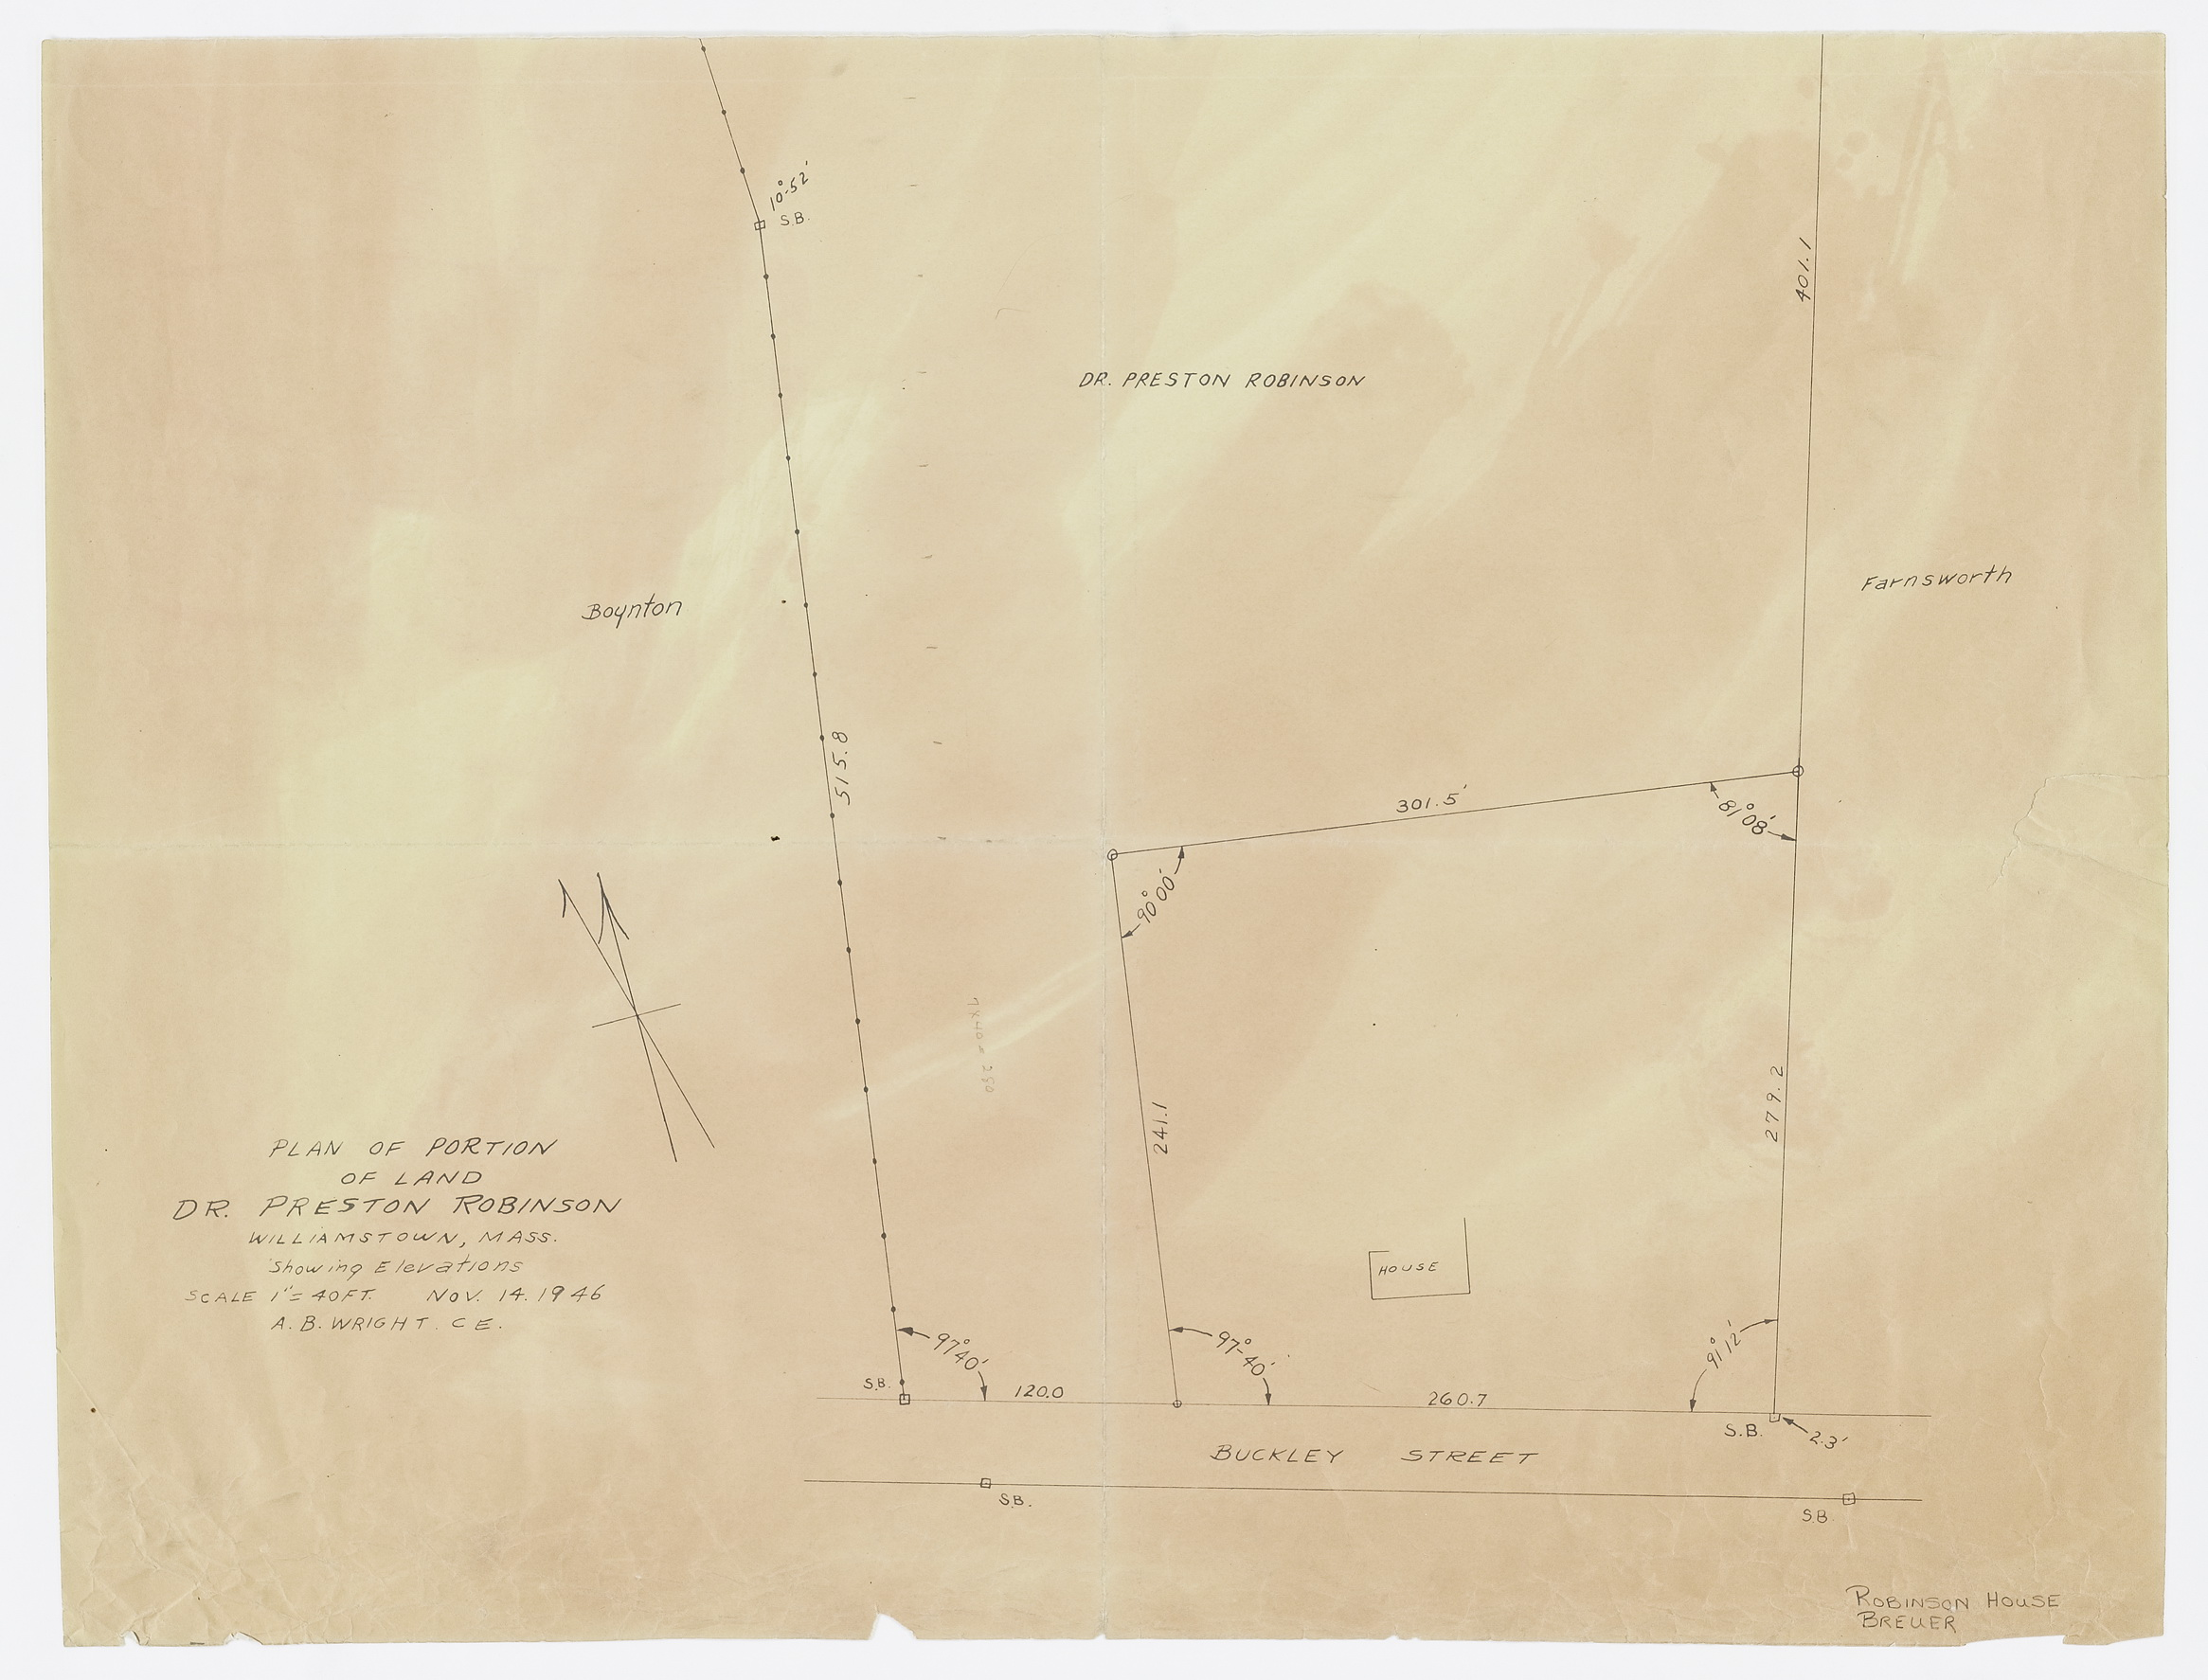 Click to select: Plan of Portion of Land Dr. Preston Robinson